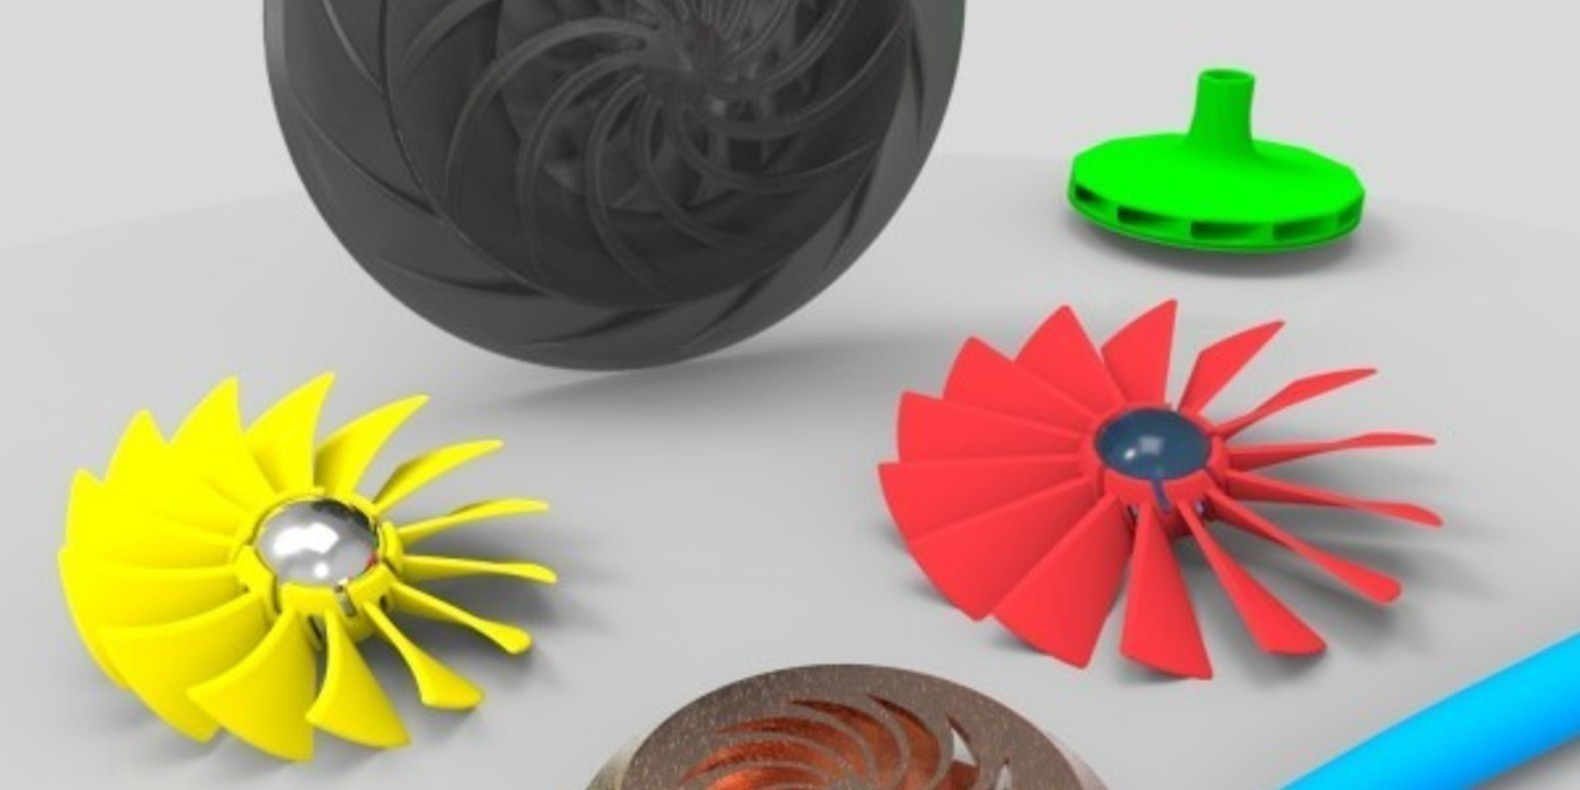 http://fichier3d.fr/wp-content/uploads/2016/10/Toupie-3D-printing-cults-devin-montes-makeanything-2.jpg